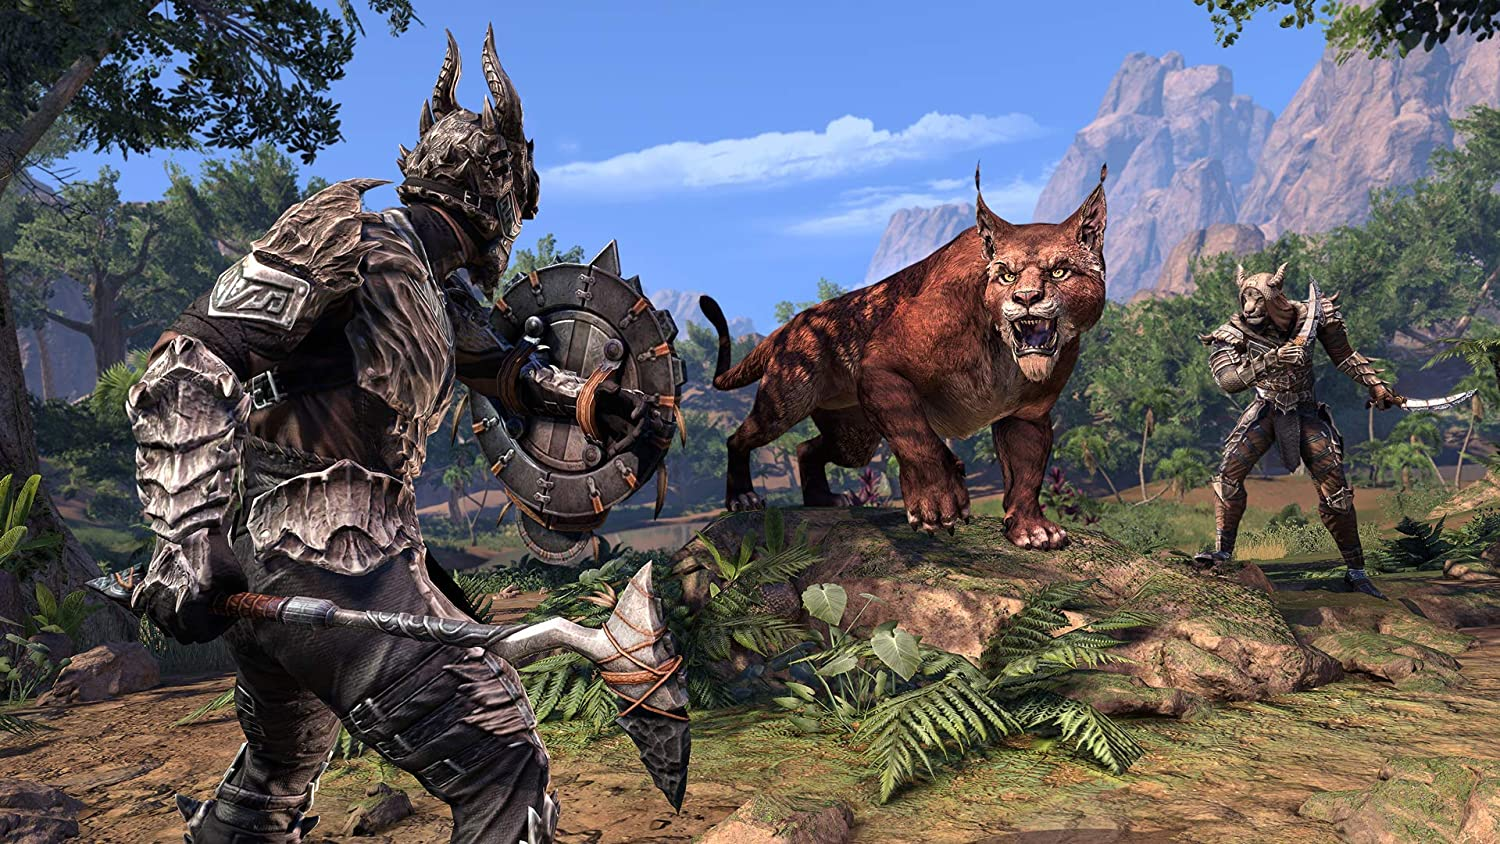 Amazon com: The Elder Scrolls Online: Elsweyr - PC Standard